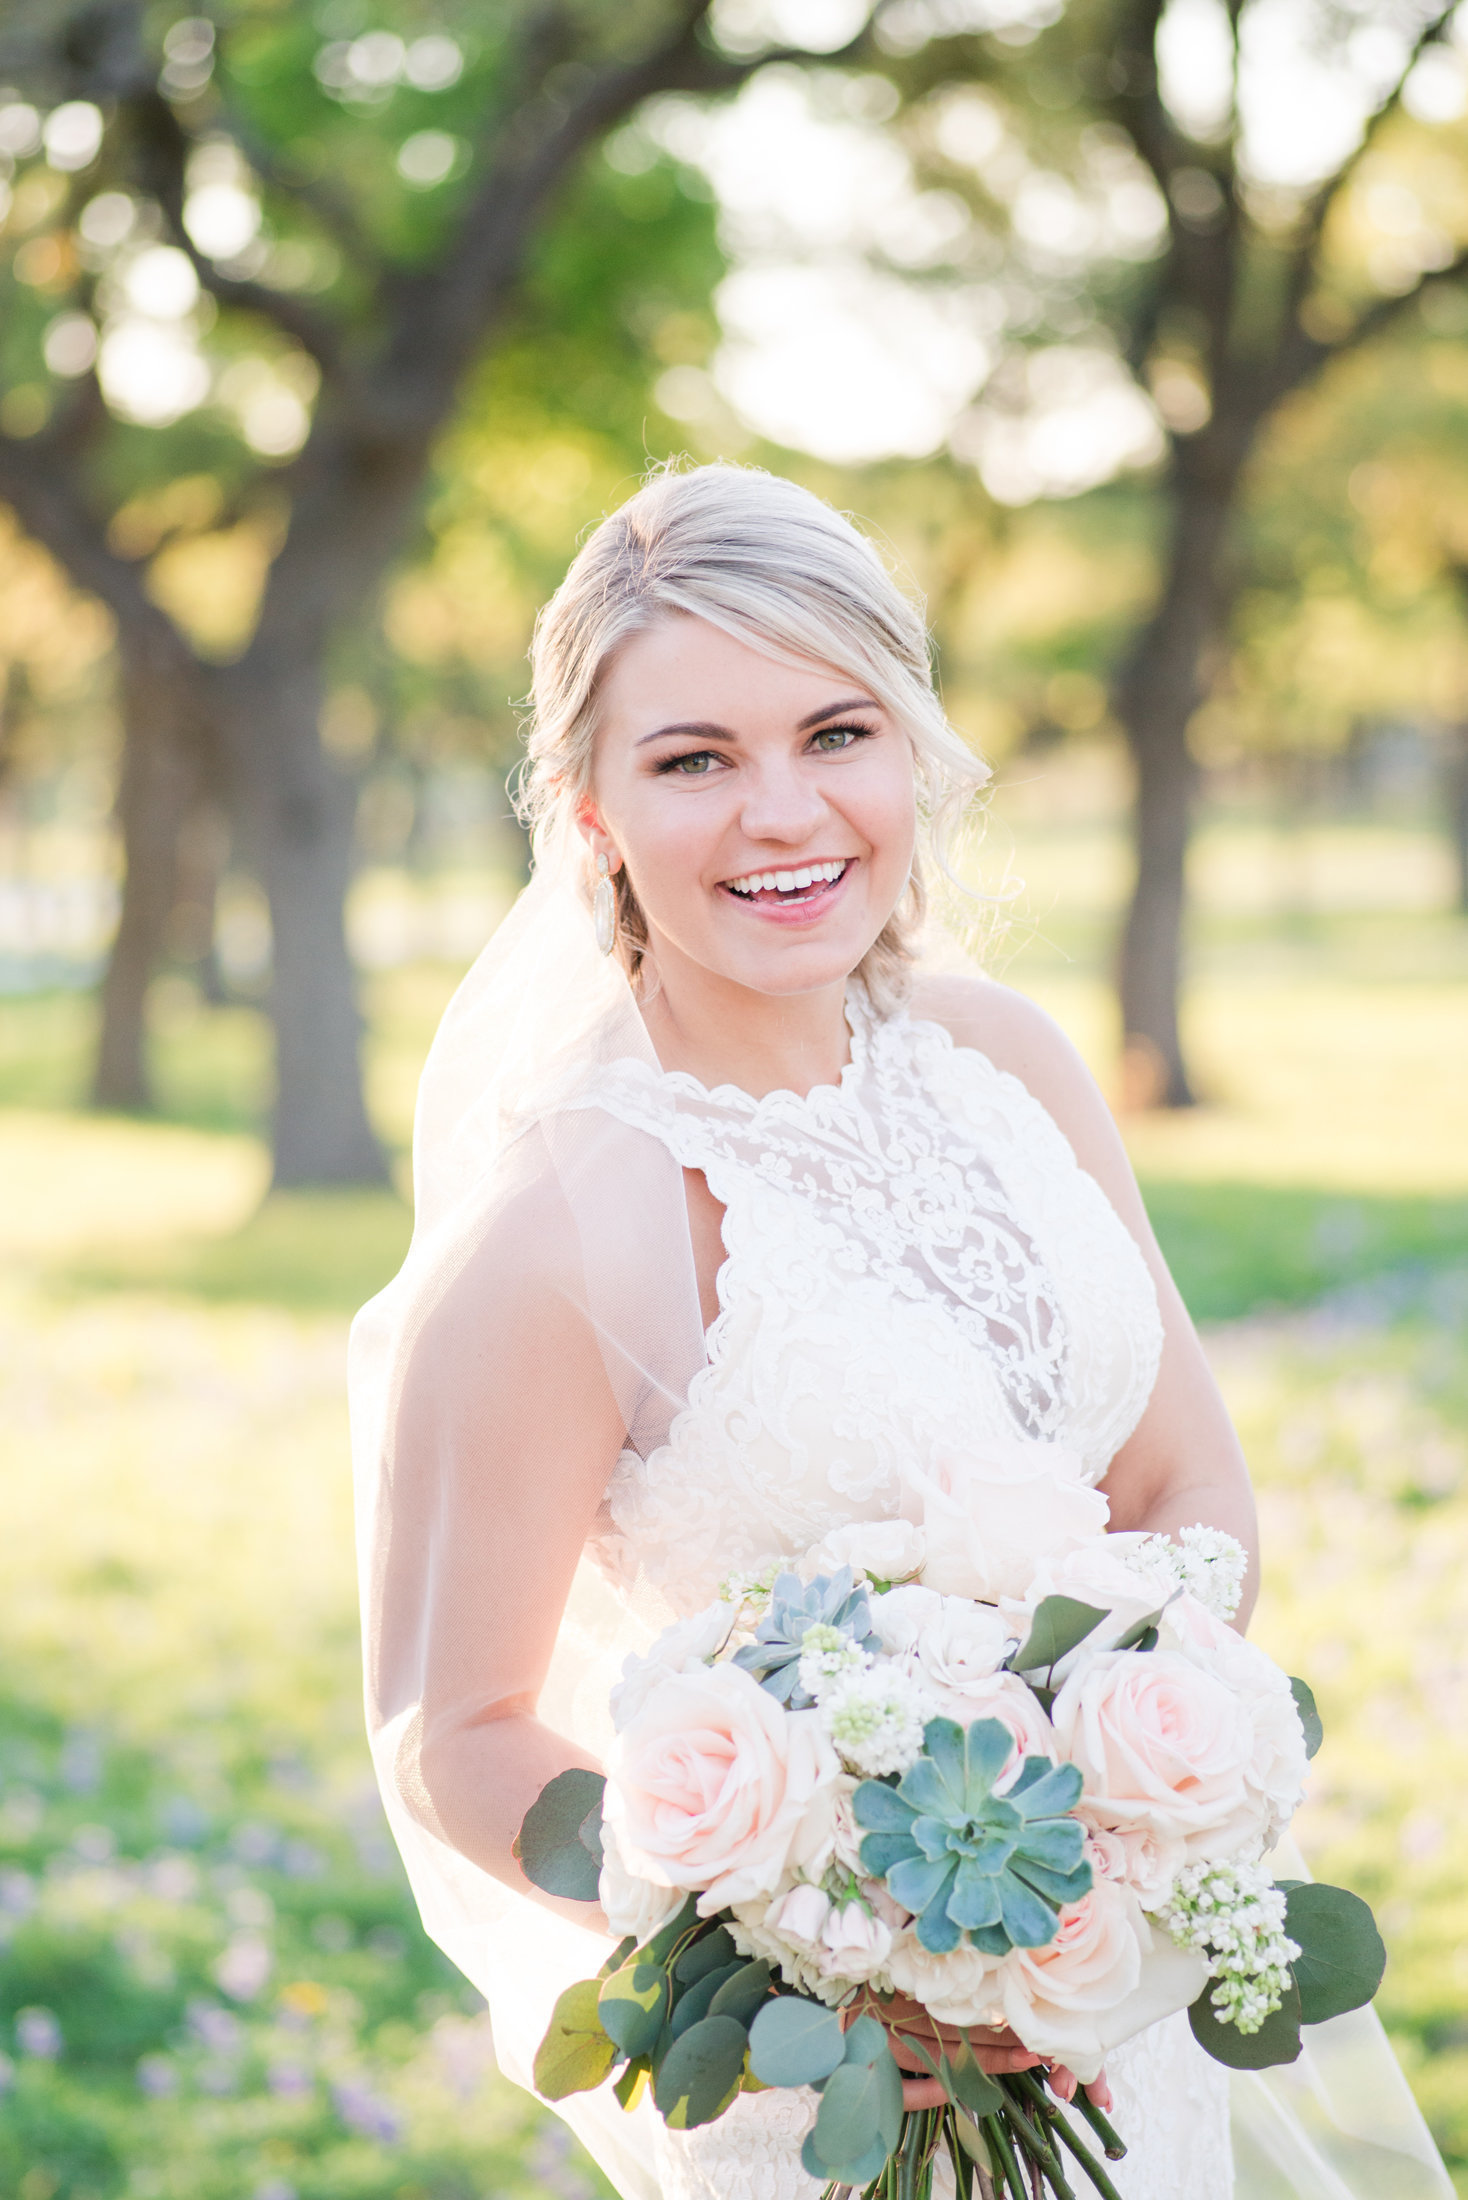 Bride in sottero and midgley wedding dress smiles with a blush rose and succulent wedding bouquet